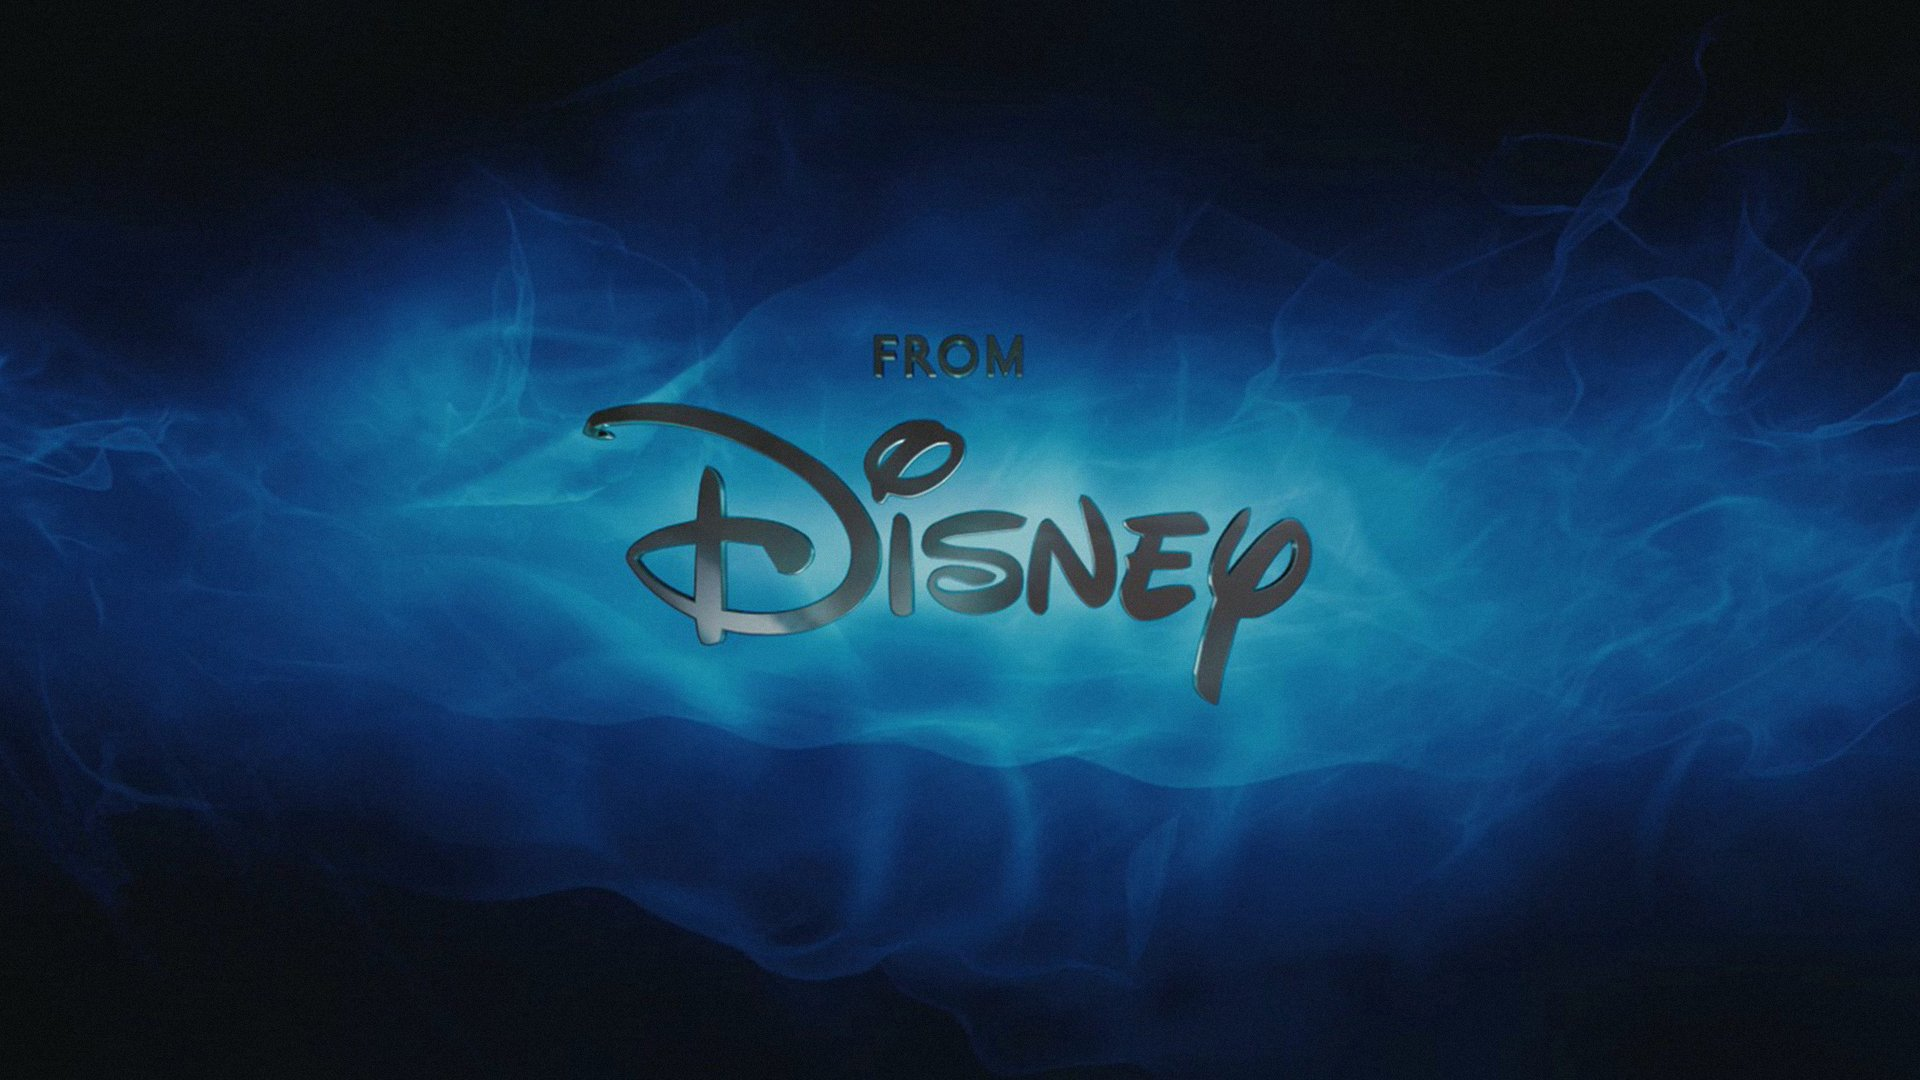 disney desktop wallpaper 1920x1080